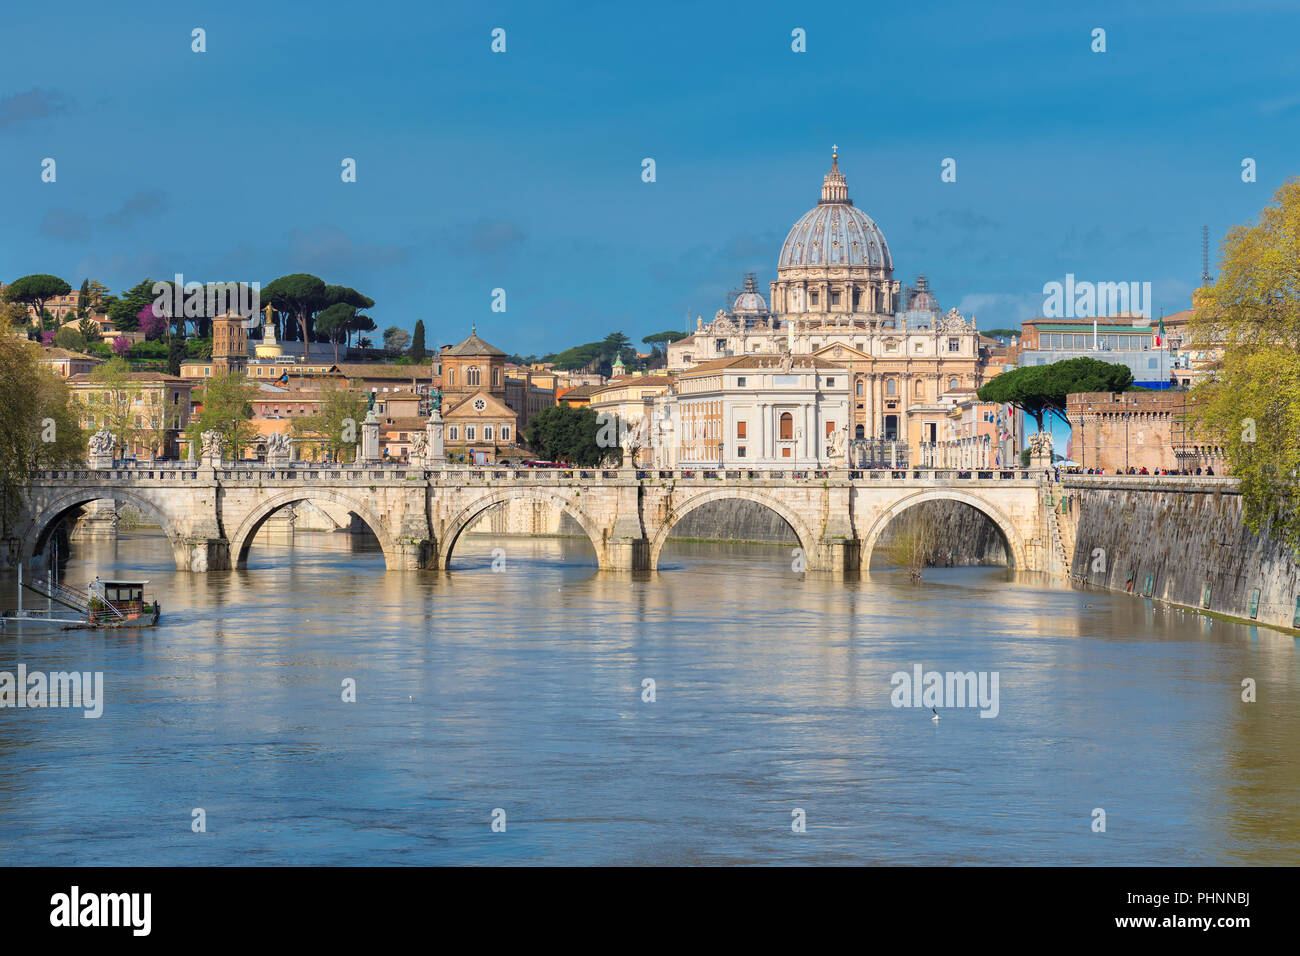 Beautiful view of St. Peter's cathedral with bridge in Vatican, Rome, Italy. Stock Photo